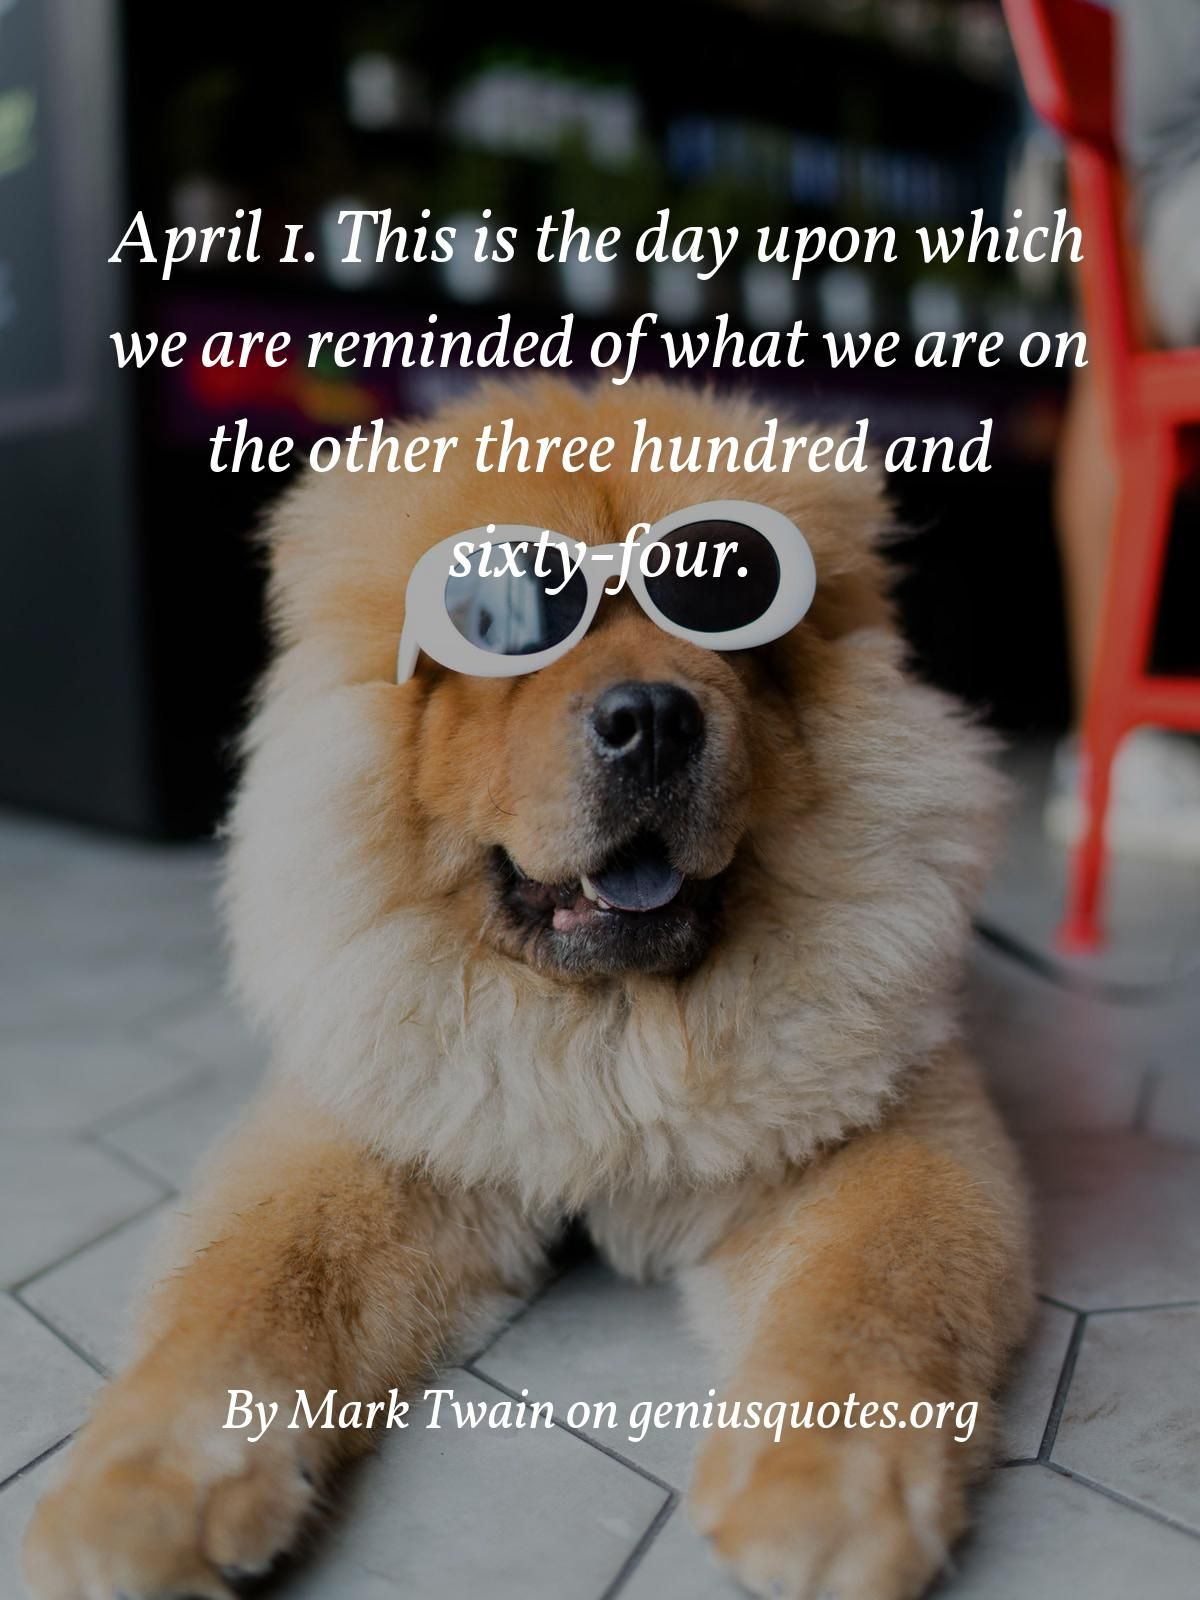 April 1 This Is The Day Upon Which We Are Reminded Of What We Are On The Other Three Hundred And Sixty Four Funny Inspirational Quotes Quotes History Quotes